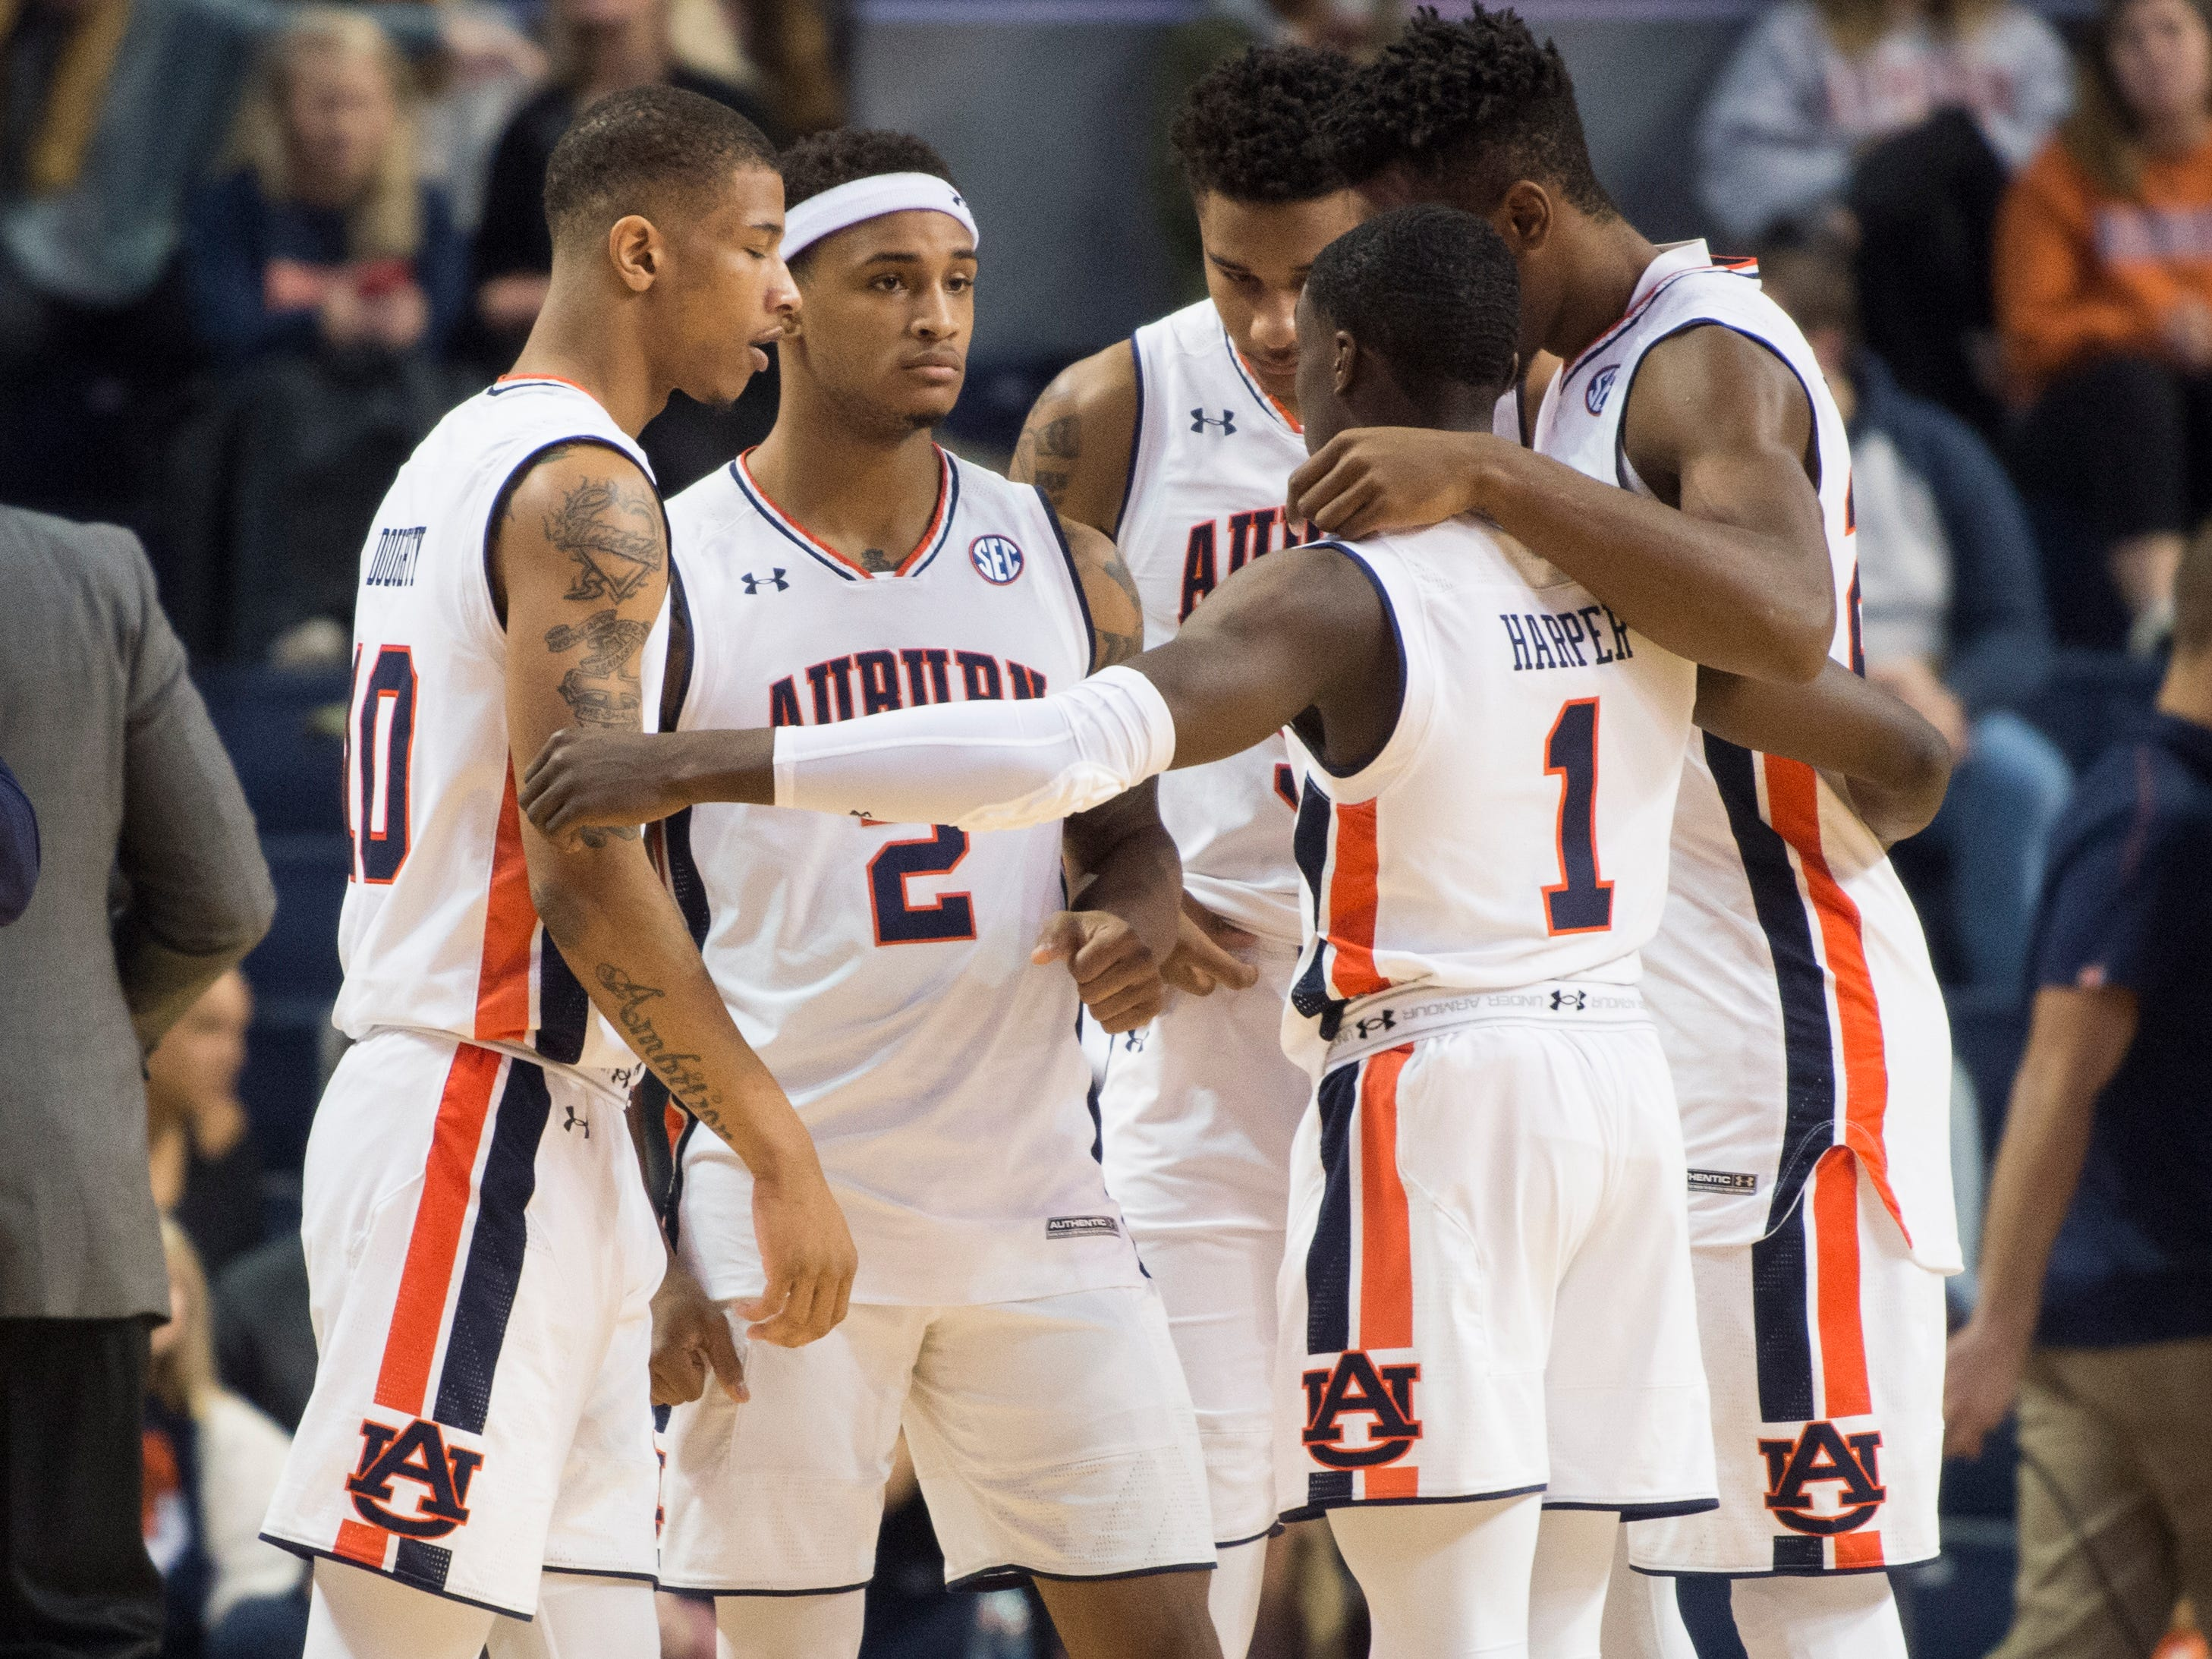 Auburn's starting five huddle up as they take the court at Auburn Arena in Auburn, Ala., on Wednesday, Nov. 28, 2018. Auburn defeated Saint Peter's 99-49.